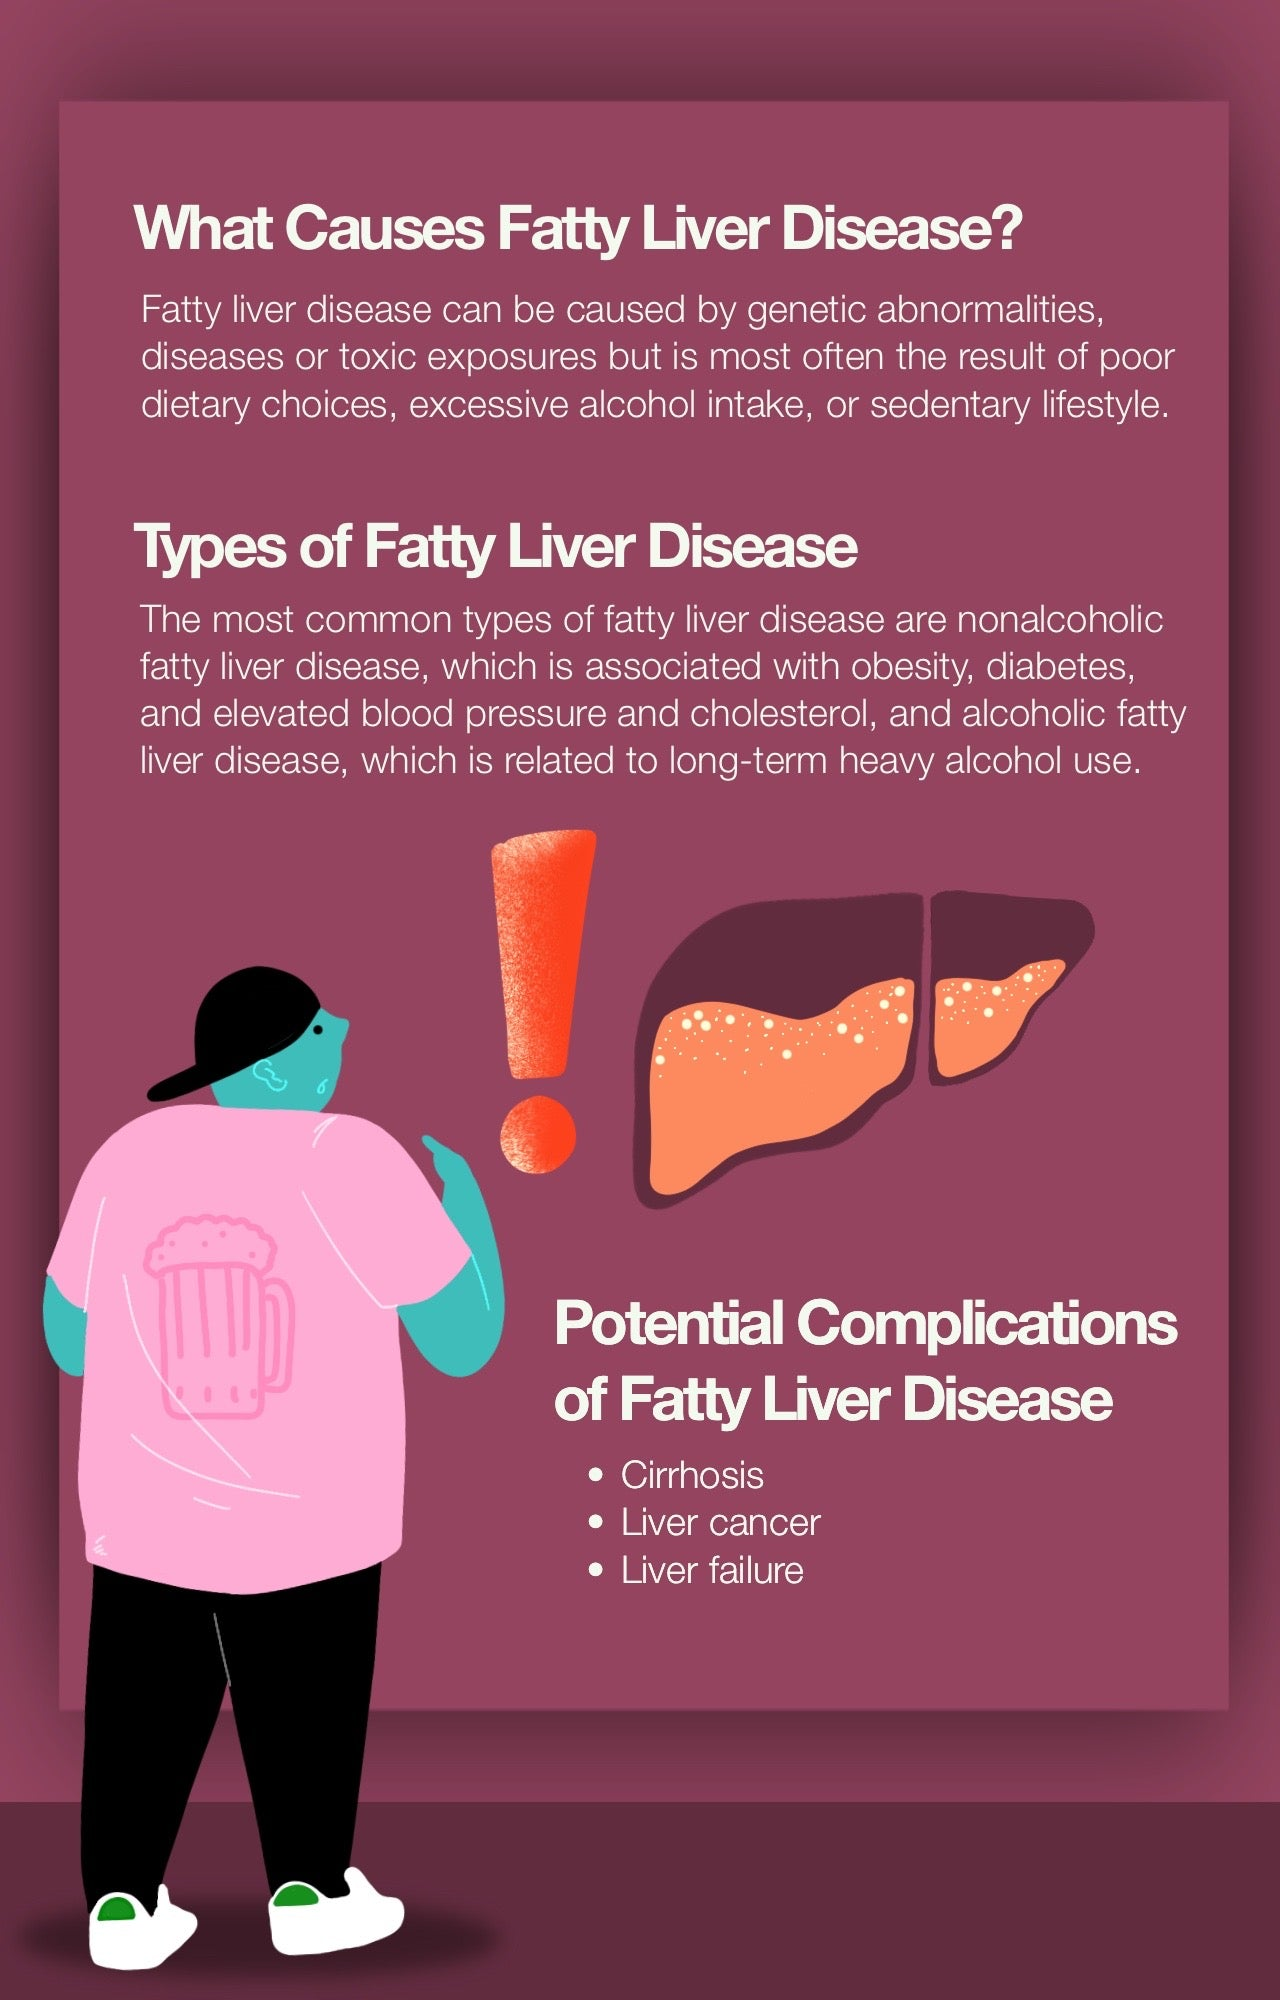 What Causes Fatty Liver Disease?